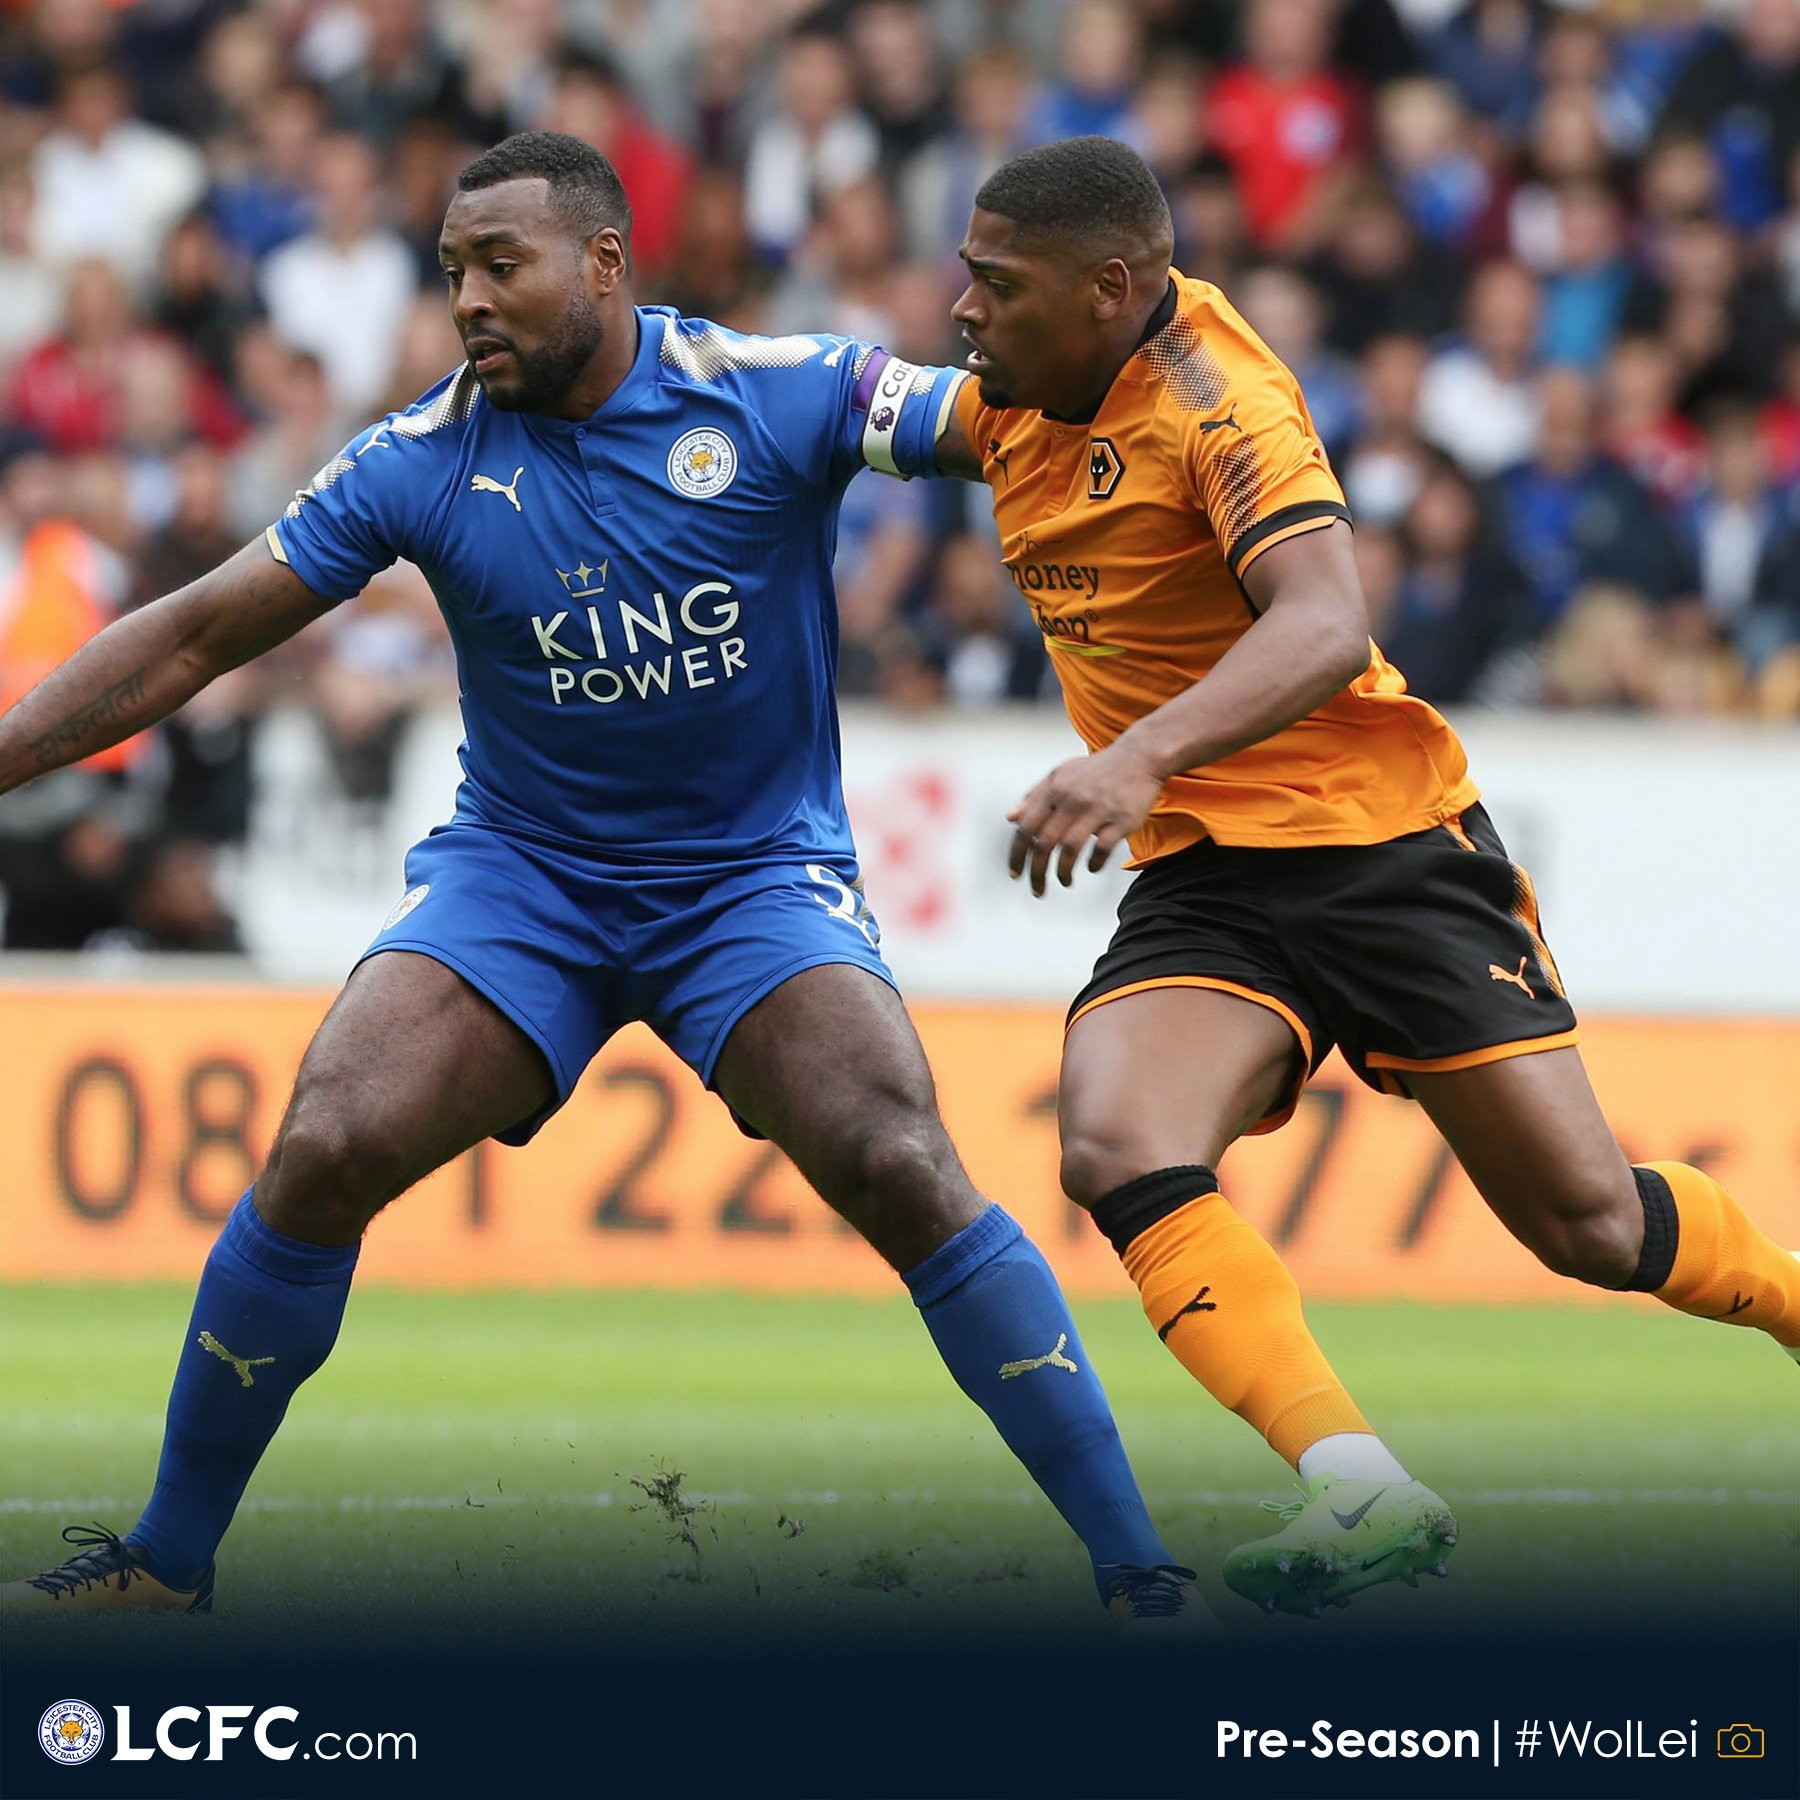 Ndidi, Mahrez Return, Musa Out As Leicester Fall To Wolves